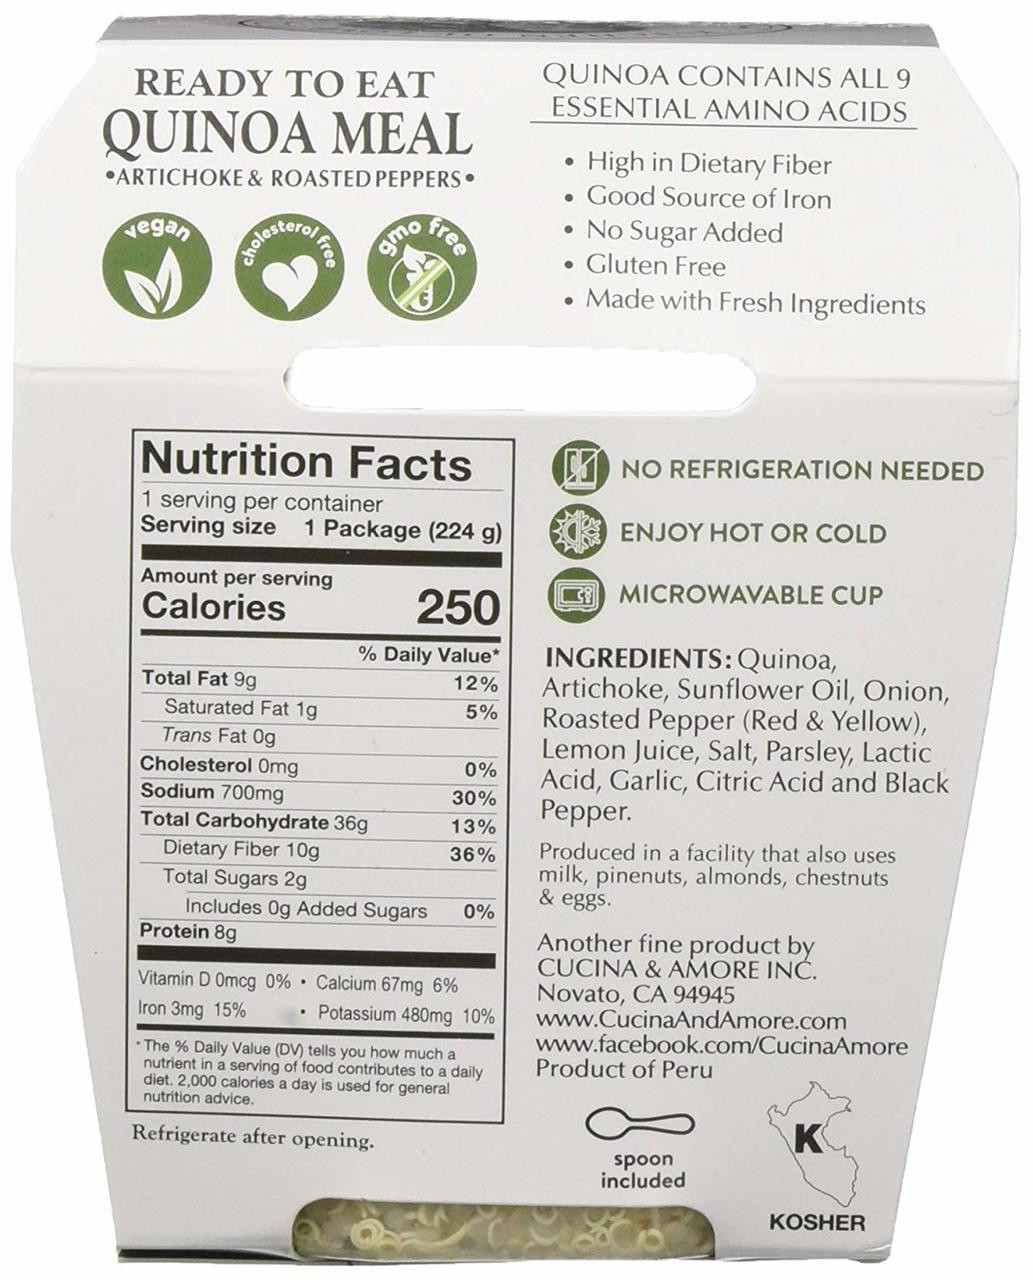 Cucina And Amore Quinoa Review Kitchen Love Quinoa Meal Artichokes Roasted Pepper 7 9 Oz Cup 6 Count